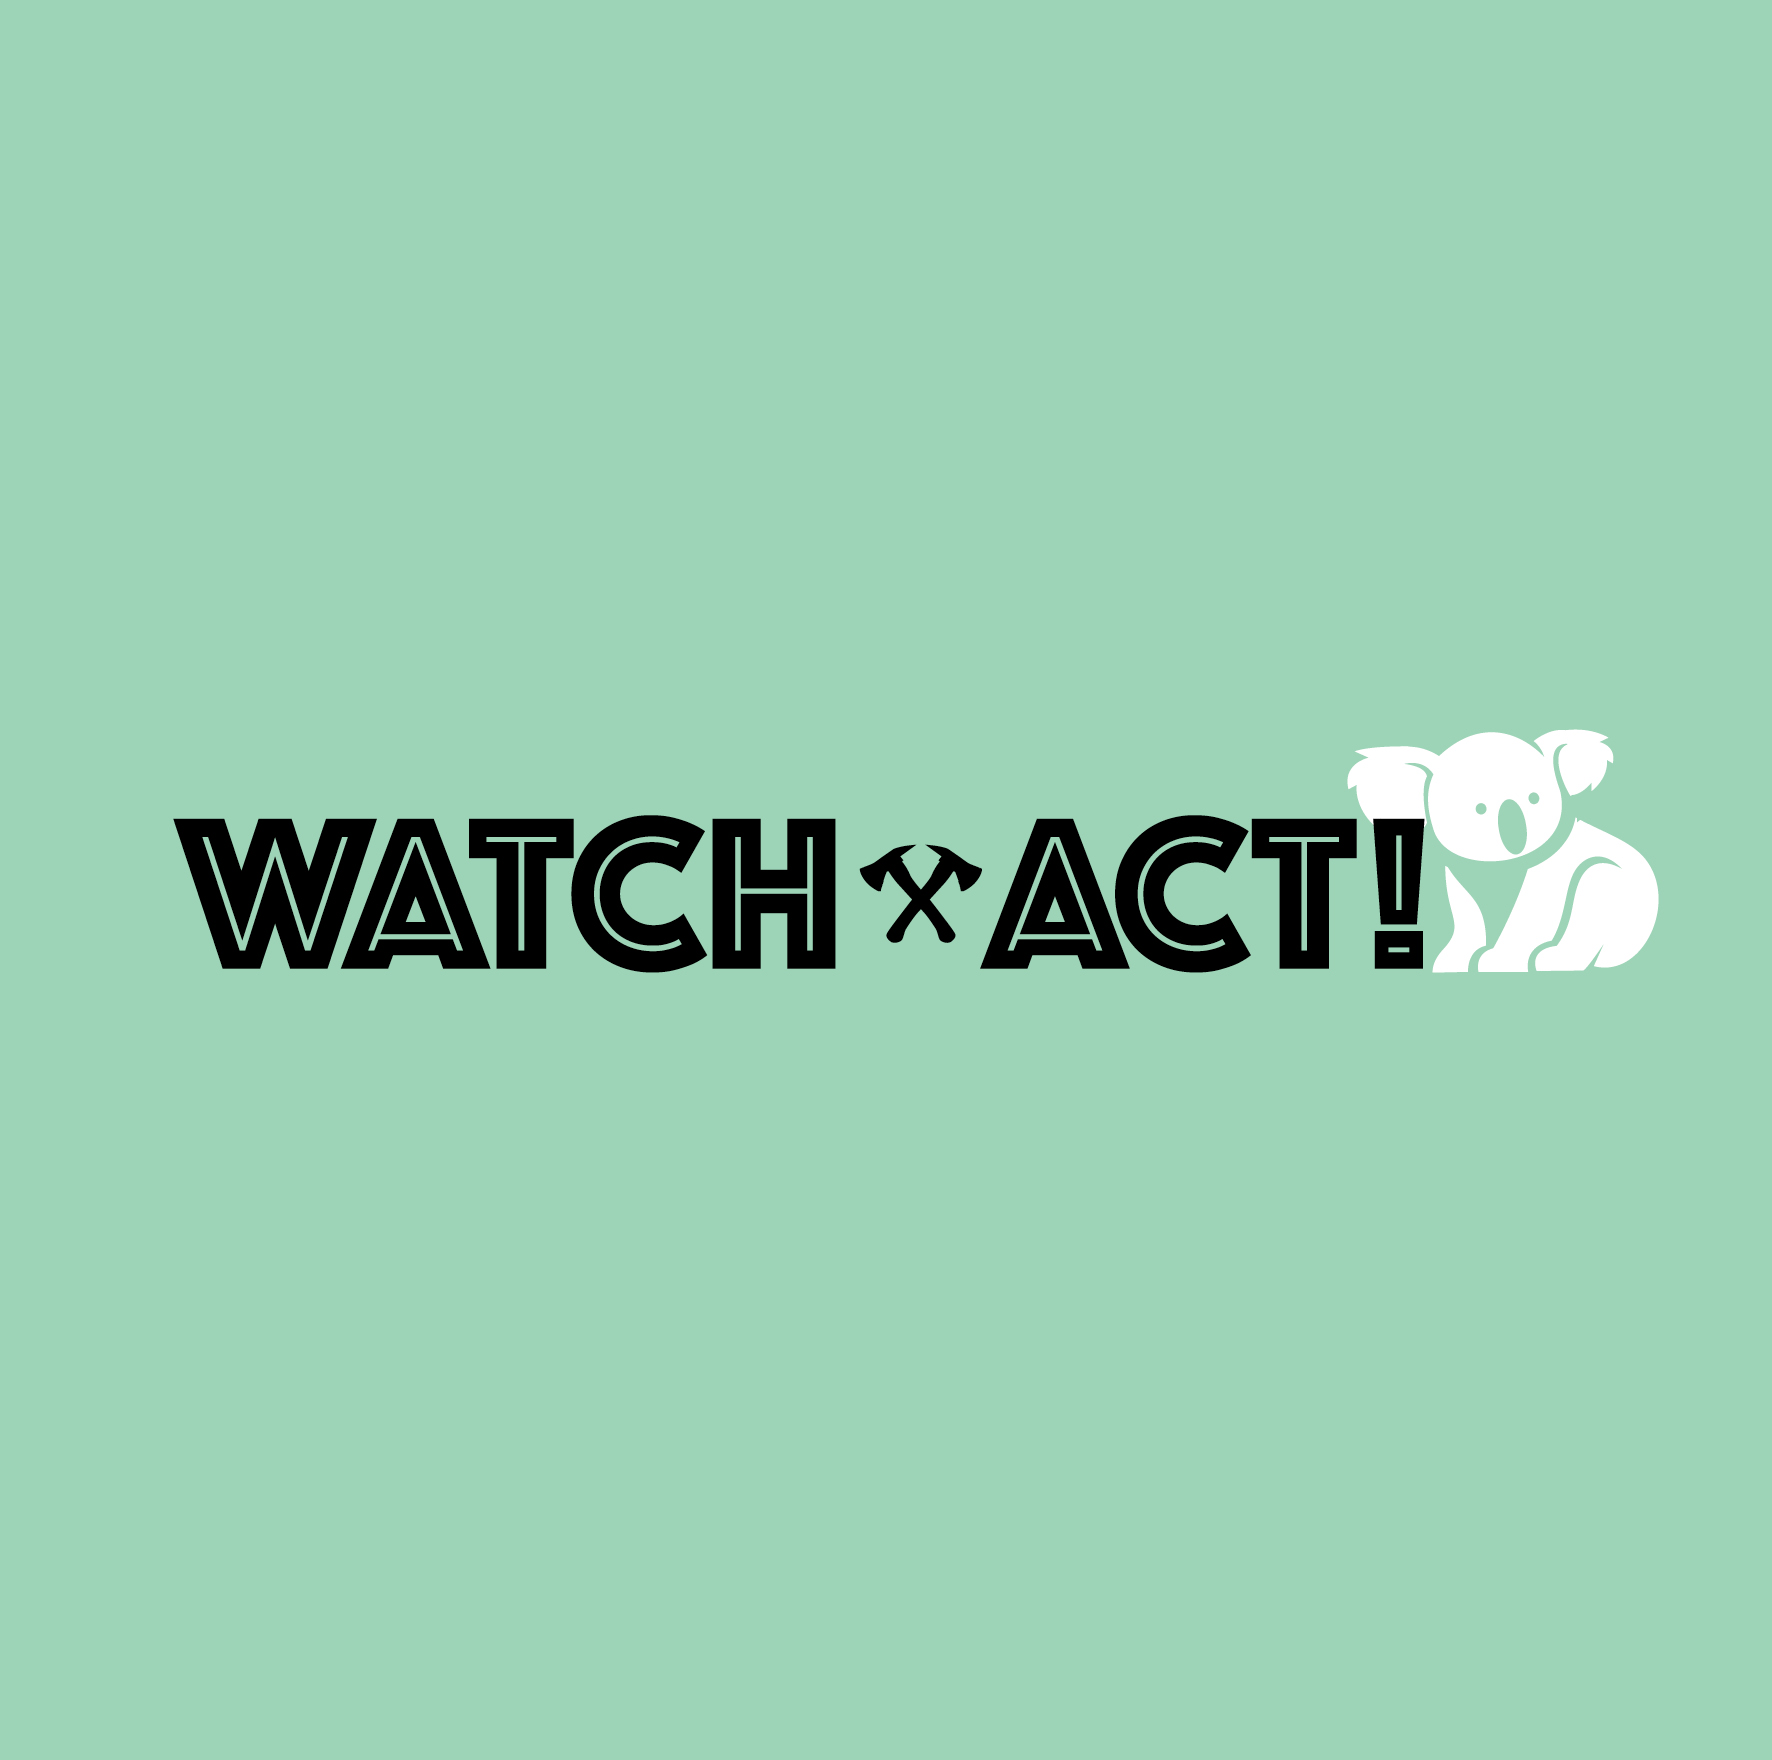 'Watch & Act!' World Watch Auction results: Over $200K raised!